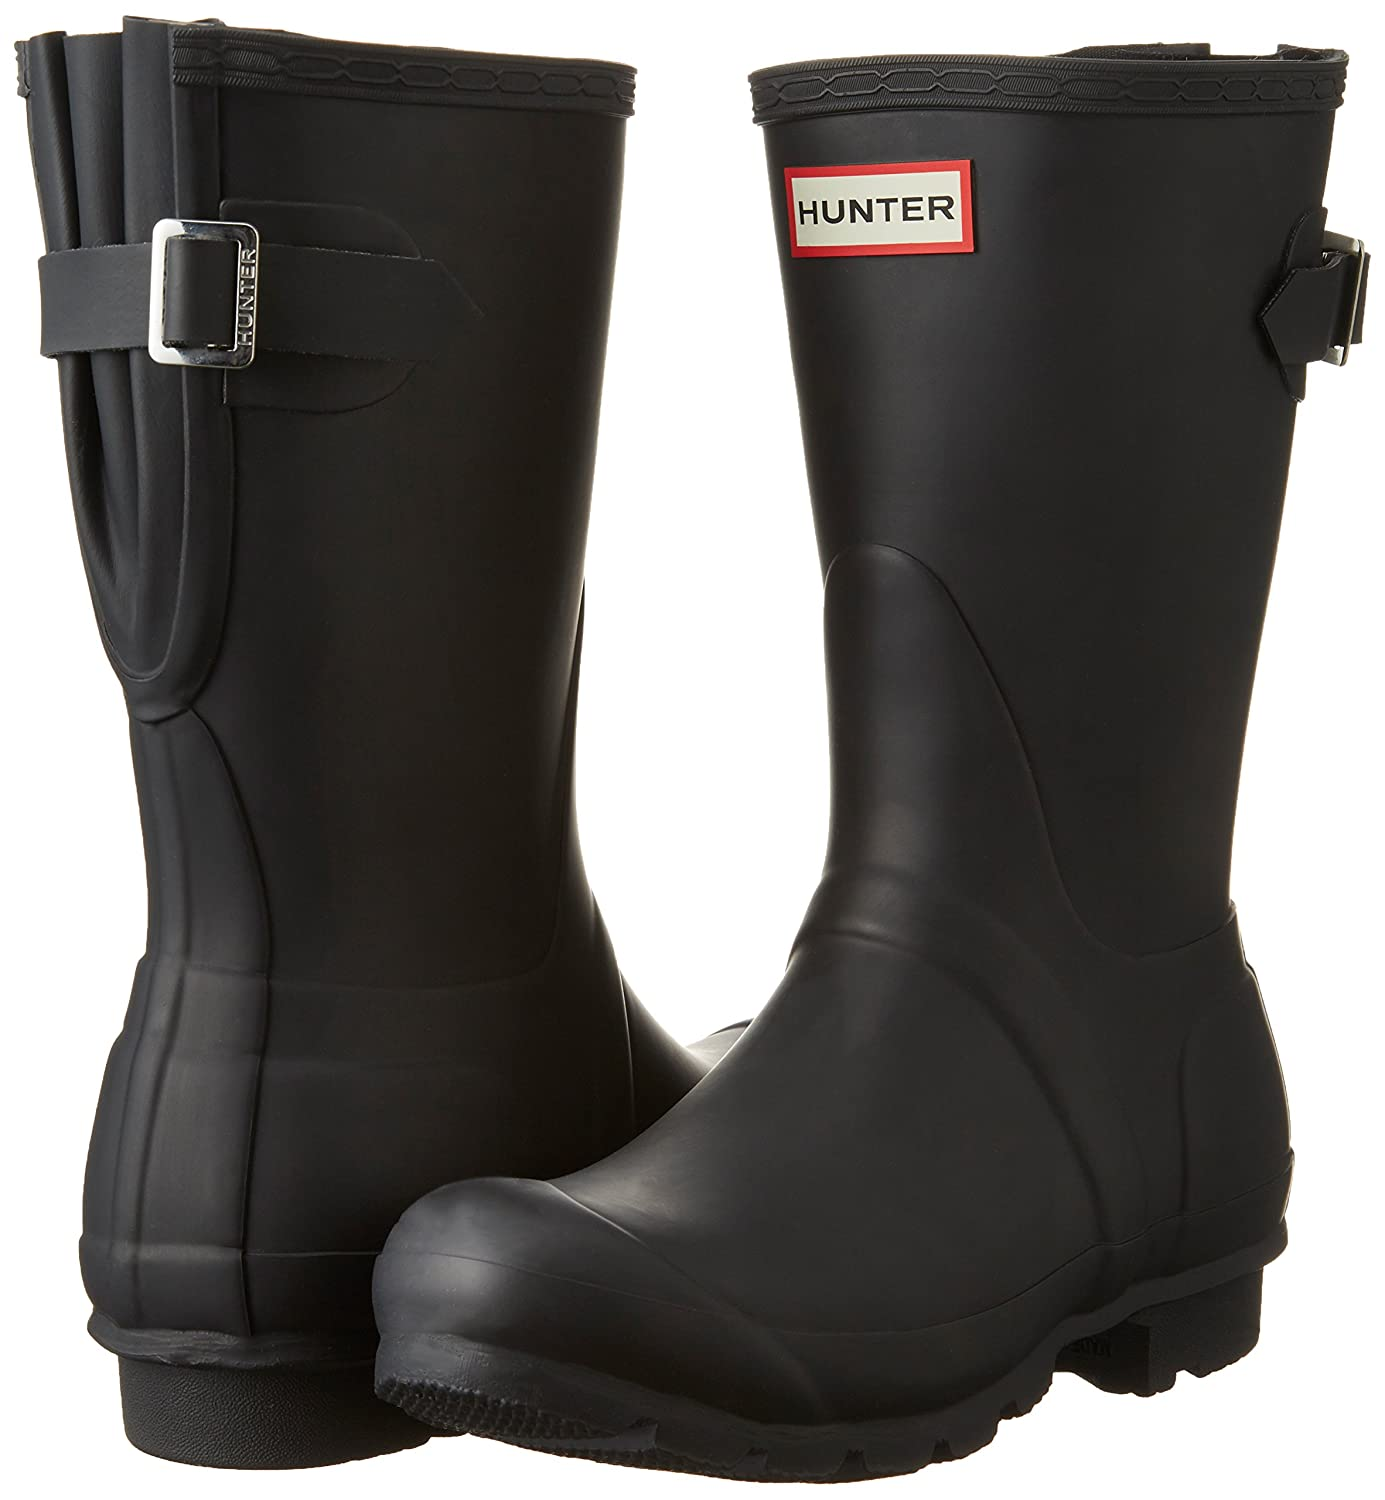 Hunter Women's Original Short Back Adjustable B(M) Rain Boot B00NU70DL6 10 B(M) Adjustable US|Black 27f90f